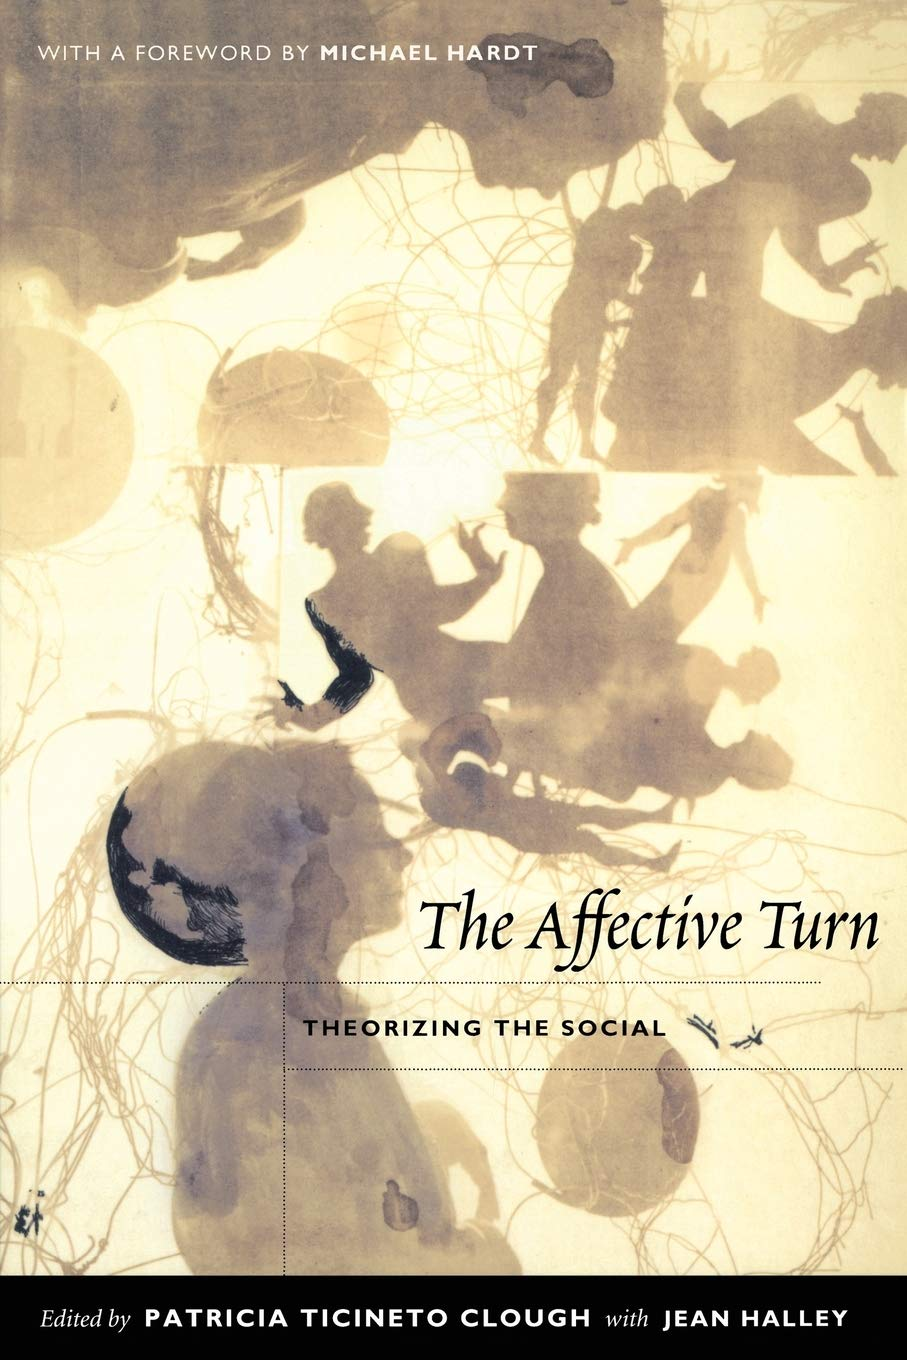 The Affective Turn Theorizing The Social